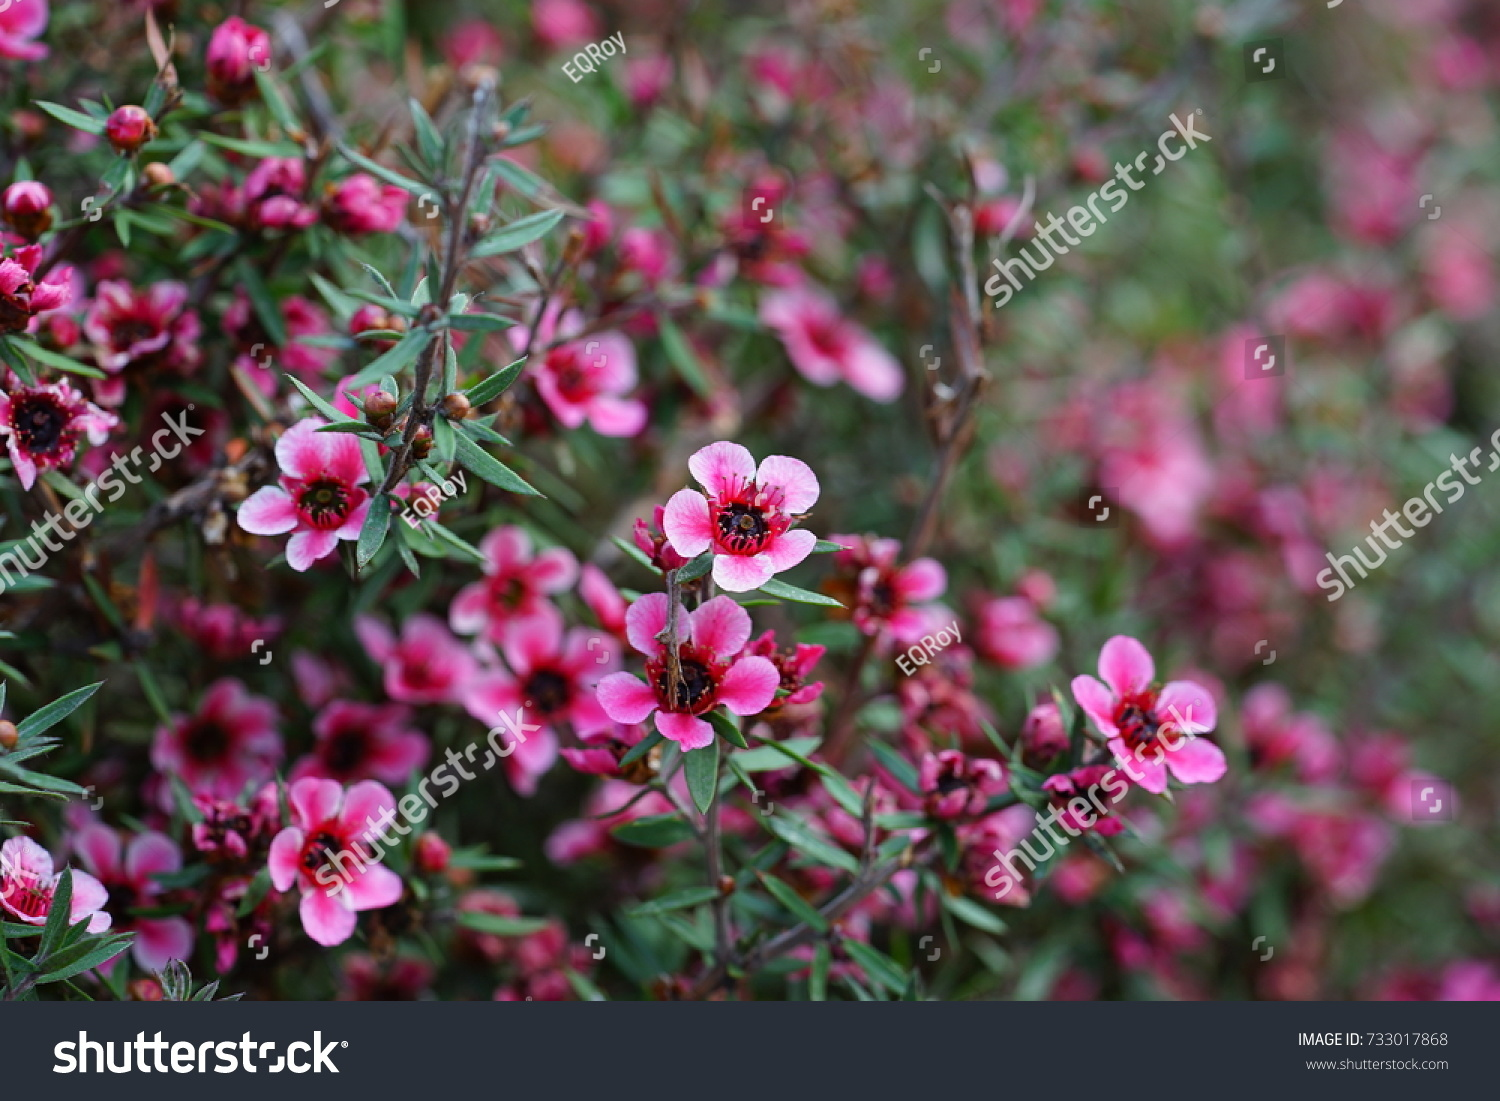 Pink waxflowers chamelaucium growing on a shrub ez canvas id 733017868 mightylinksfo